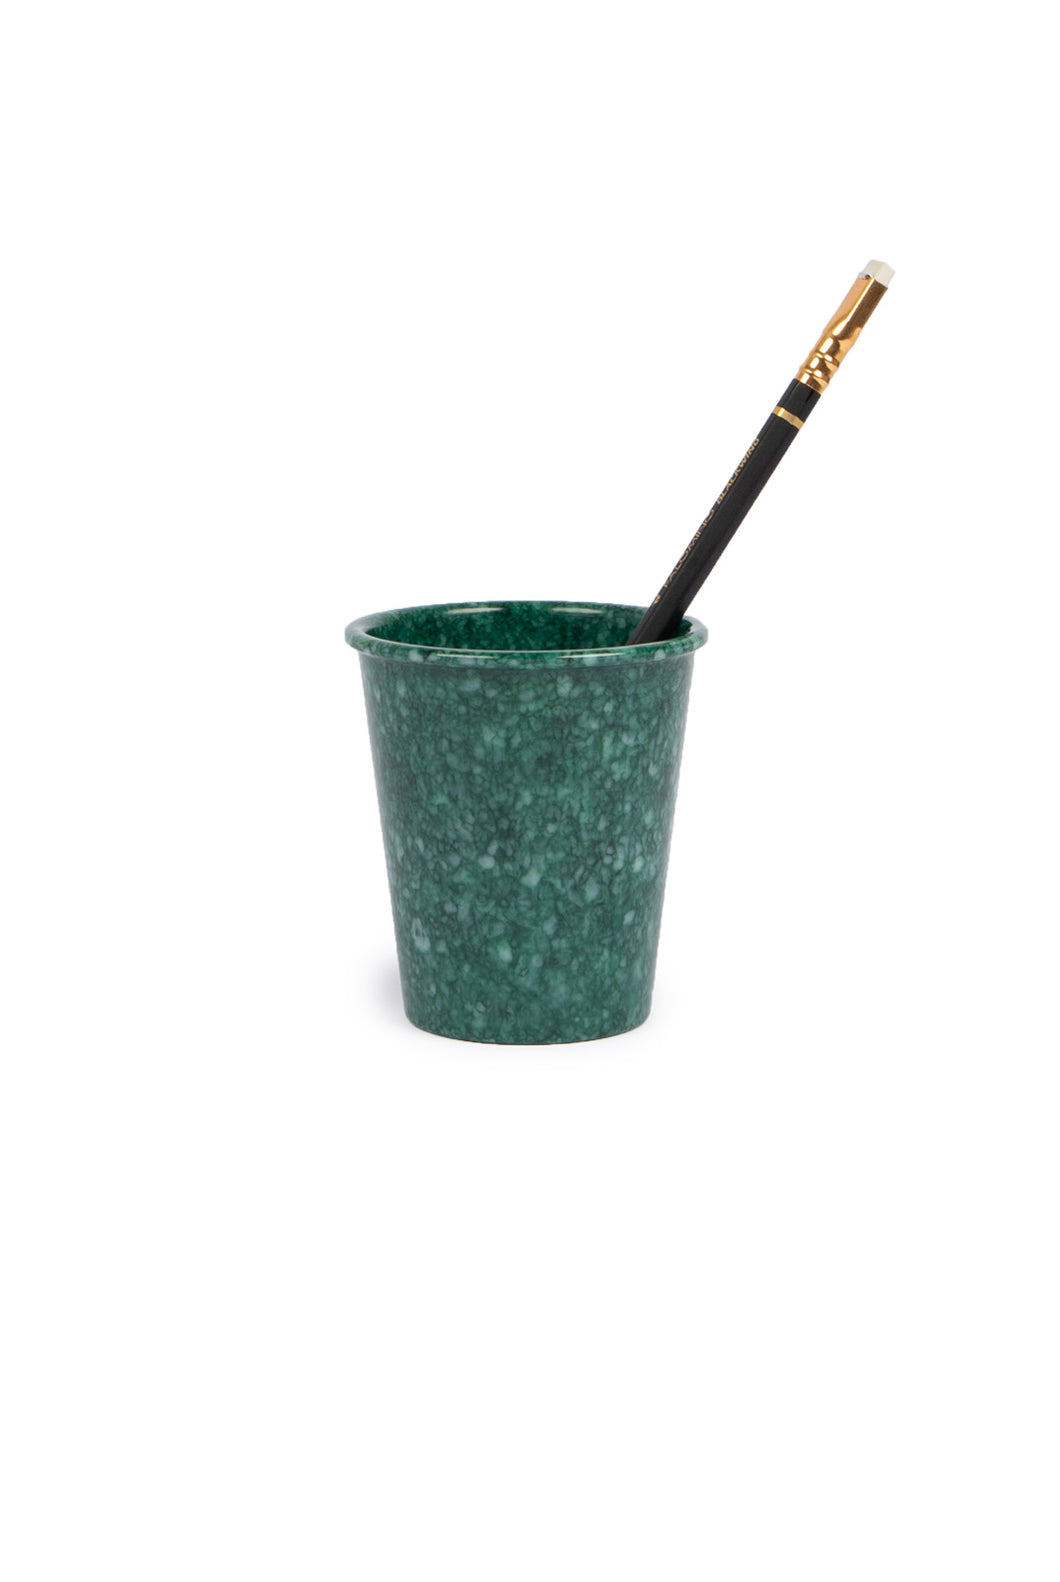 Hightide - Melamine Pen Pot - Dark Green